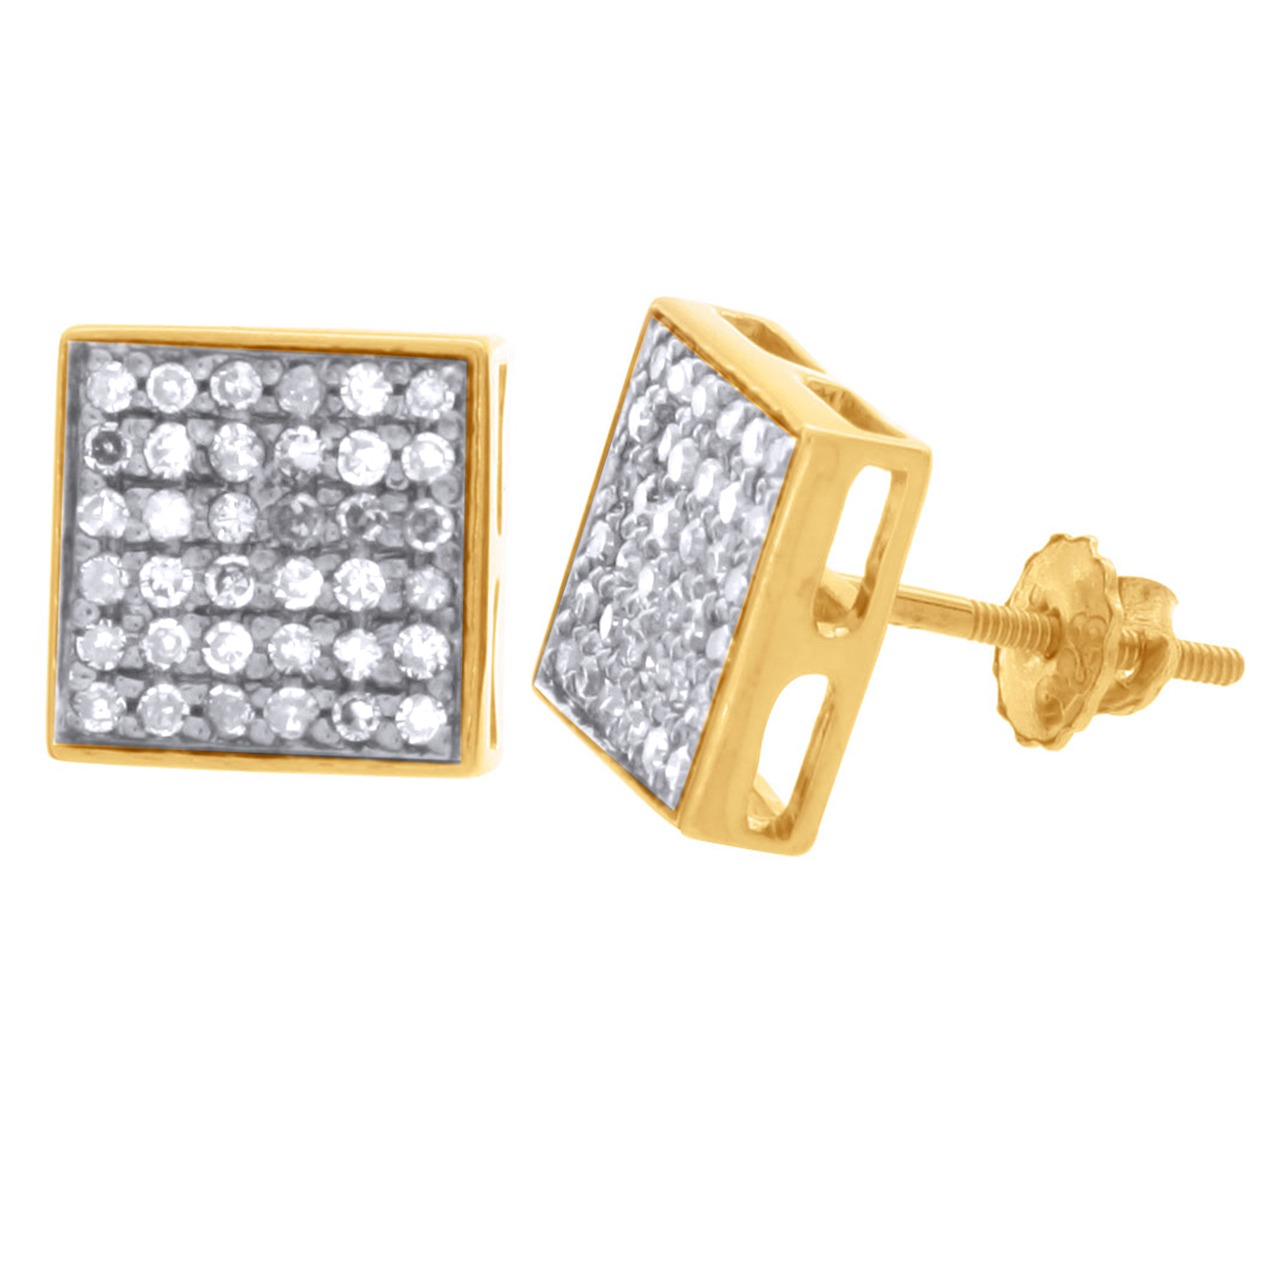 18K Yellow Gold Over Sterling Silver 0.55 ct Brown Diamond Stud Earrings